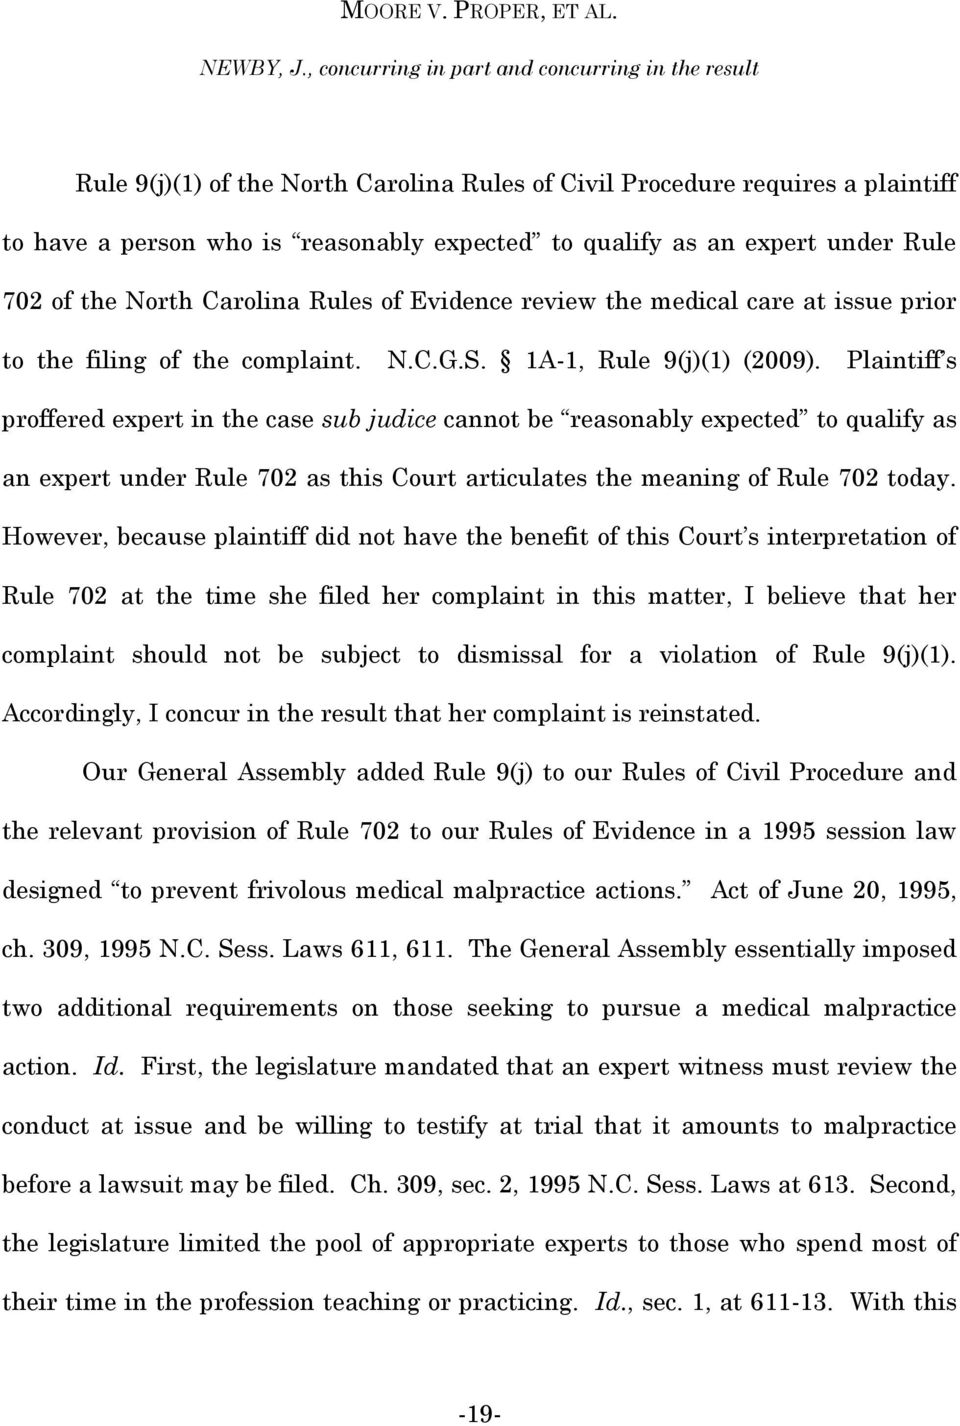 under Rule 702 of the North Carolina Rules of Evidence review the medical care at issue prior to the filing of the complaint. N.C.G.S. 1A-1, Rule 9(j)(1) (2009).